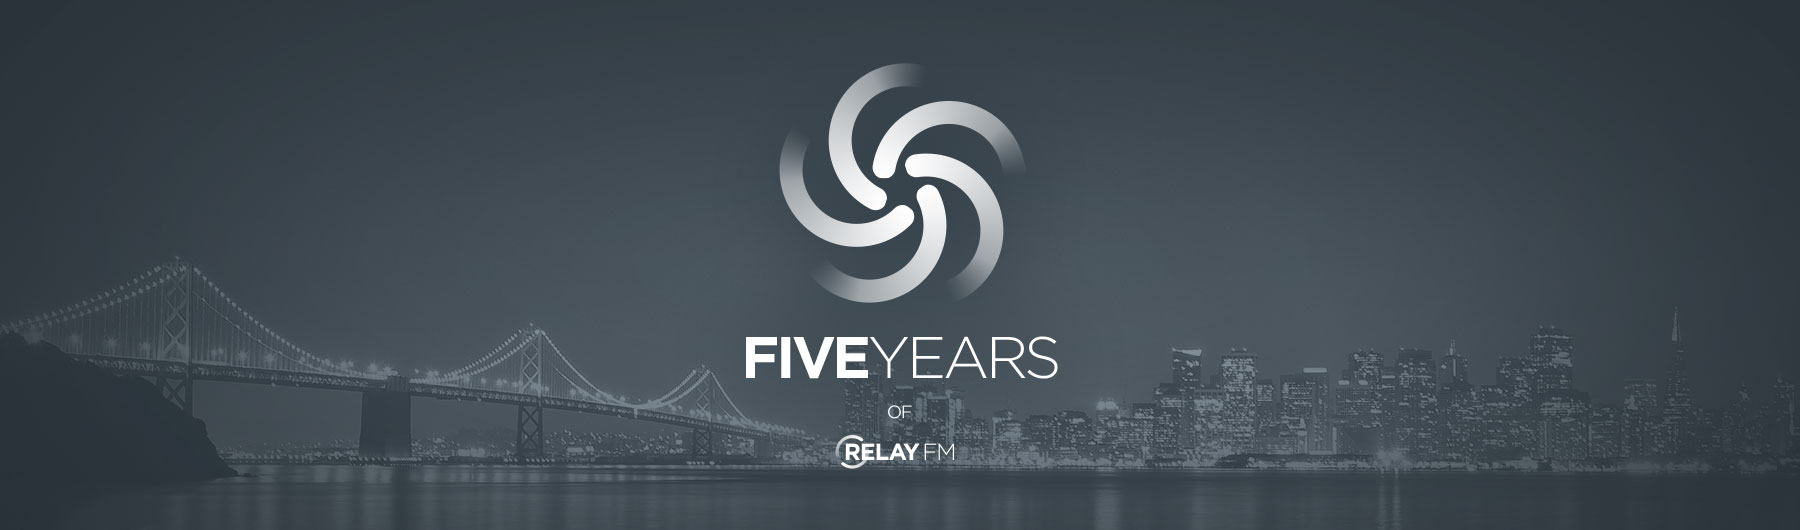 Relay FM 5th Anniversary Live Show